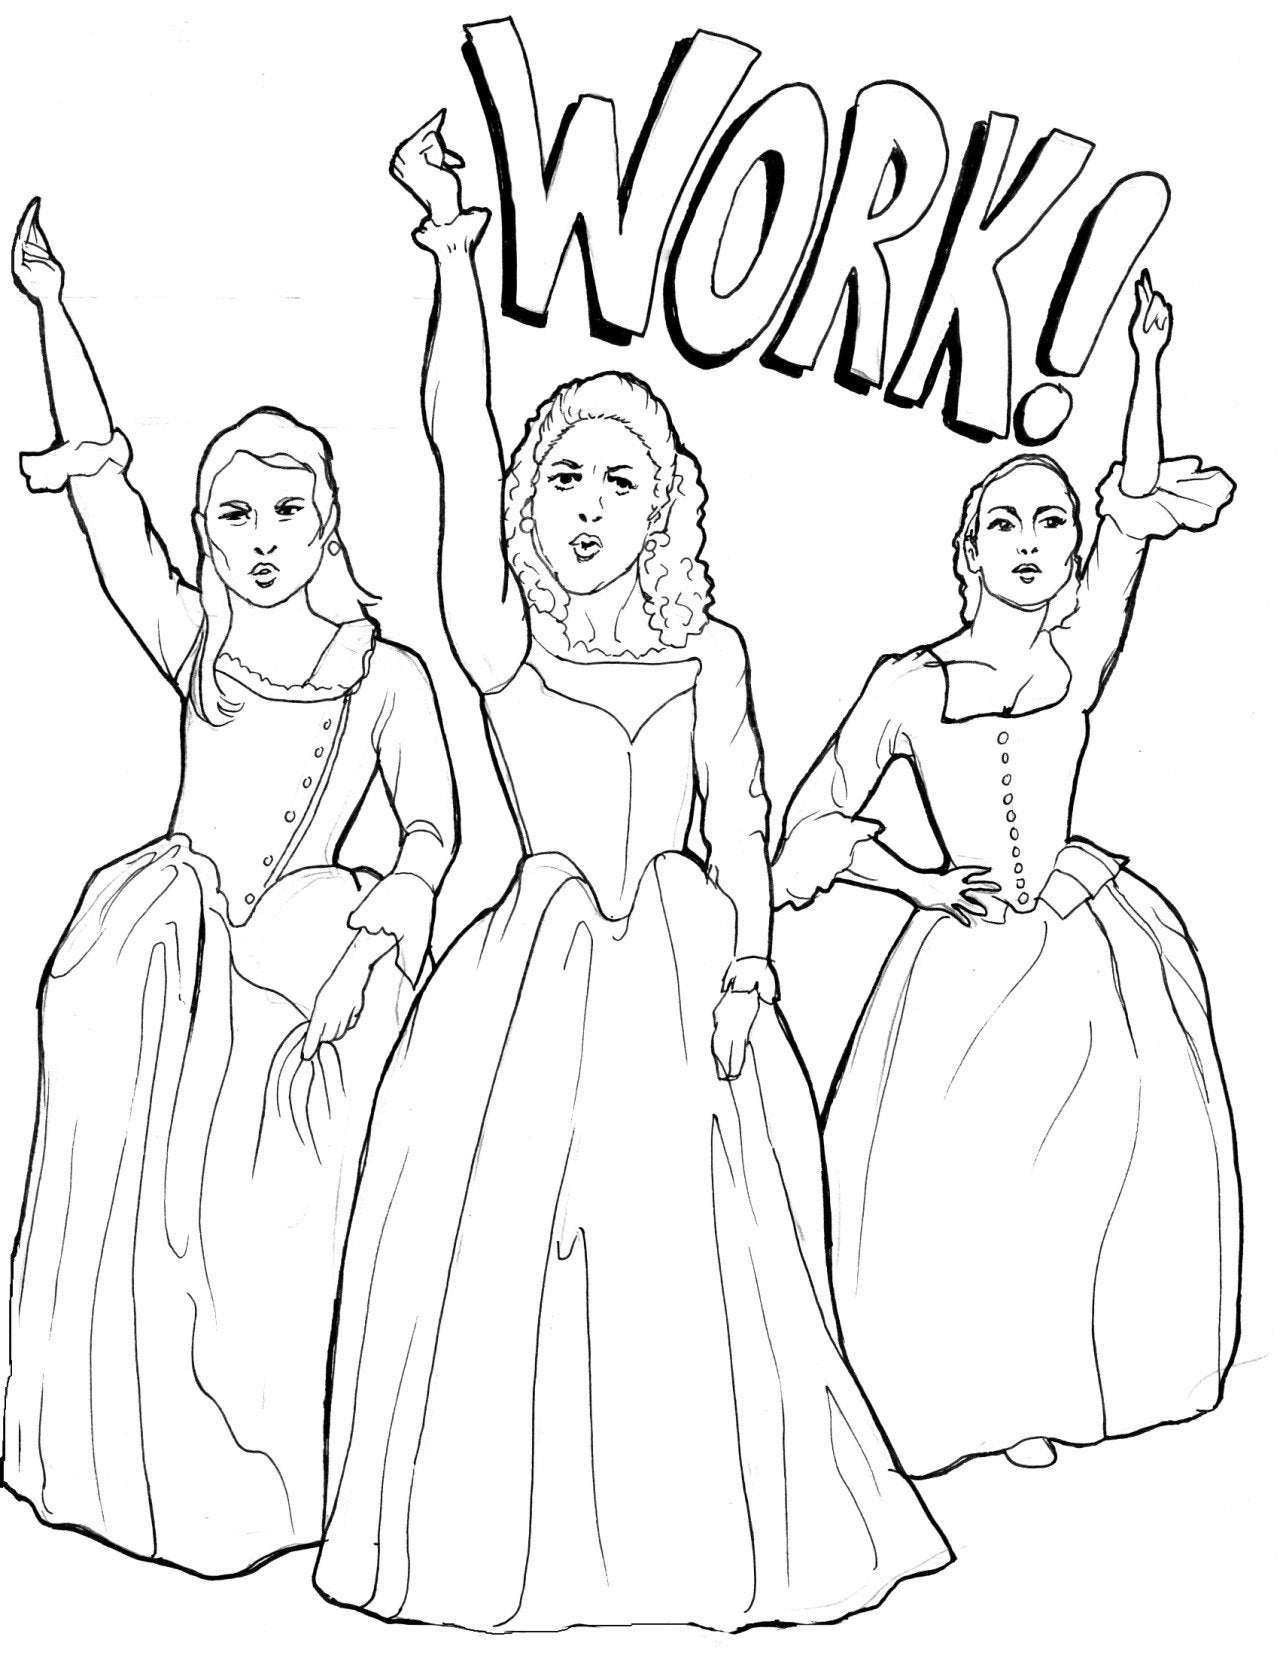 I made this Hamilton coloring book for a friend's birthday. Feel free to  use it! : hamiltonmusical